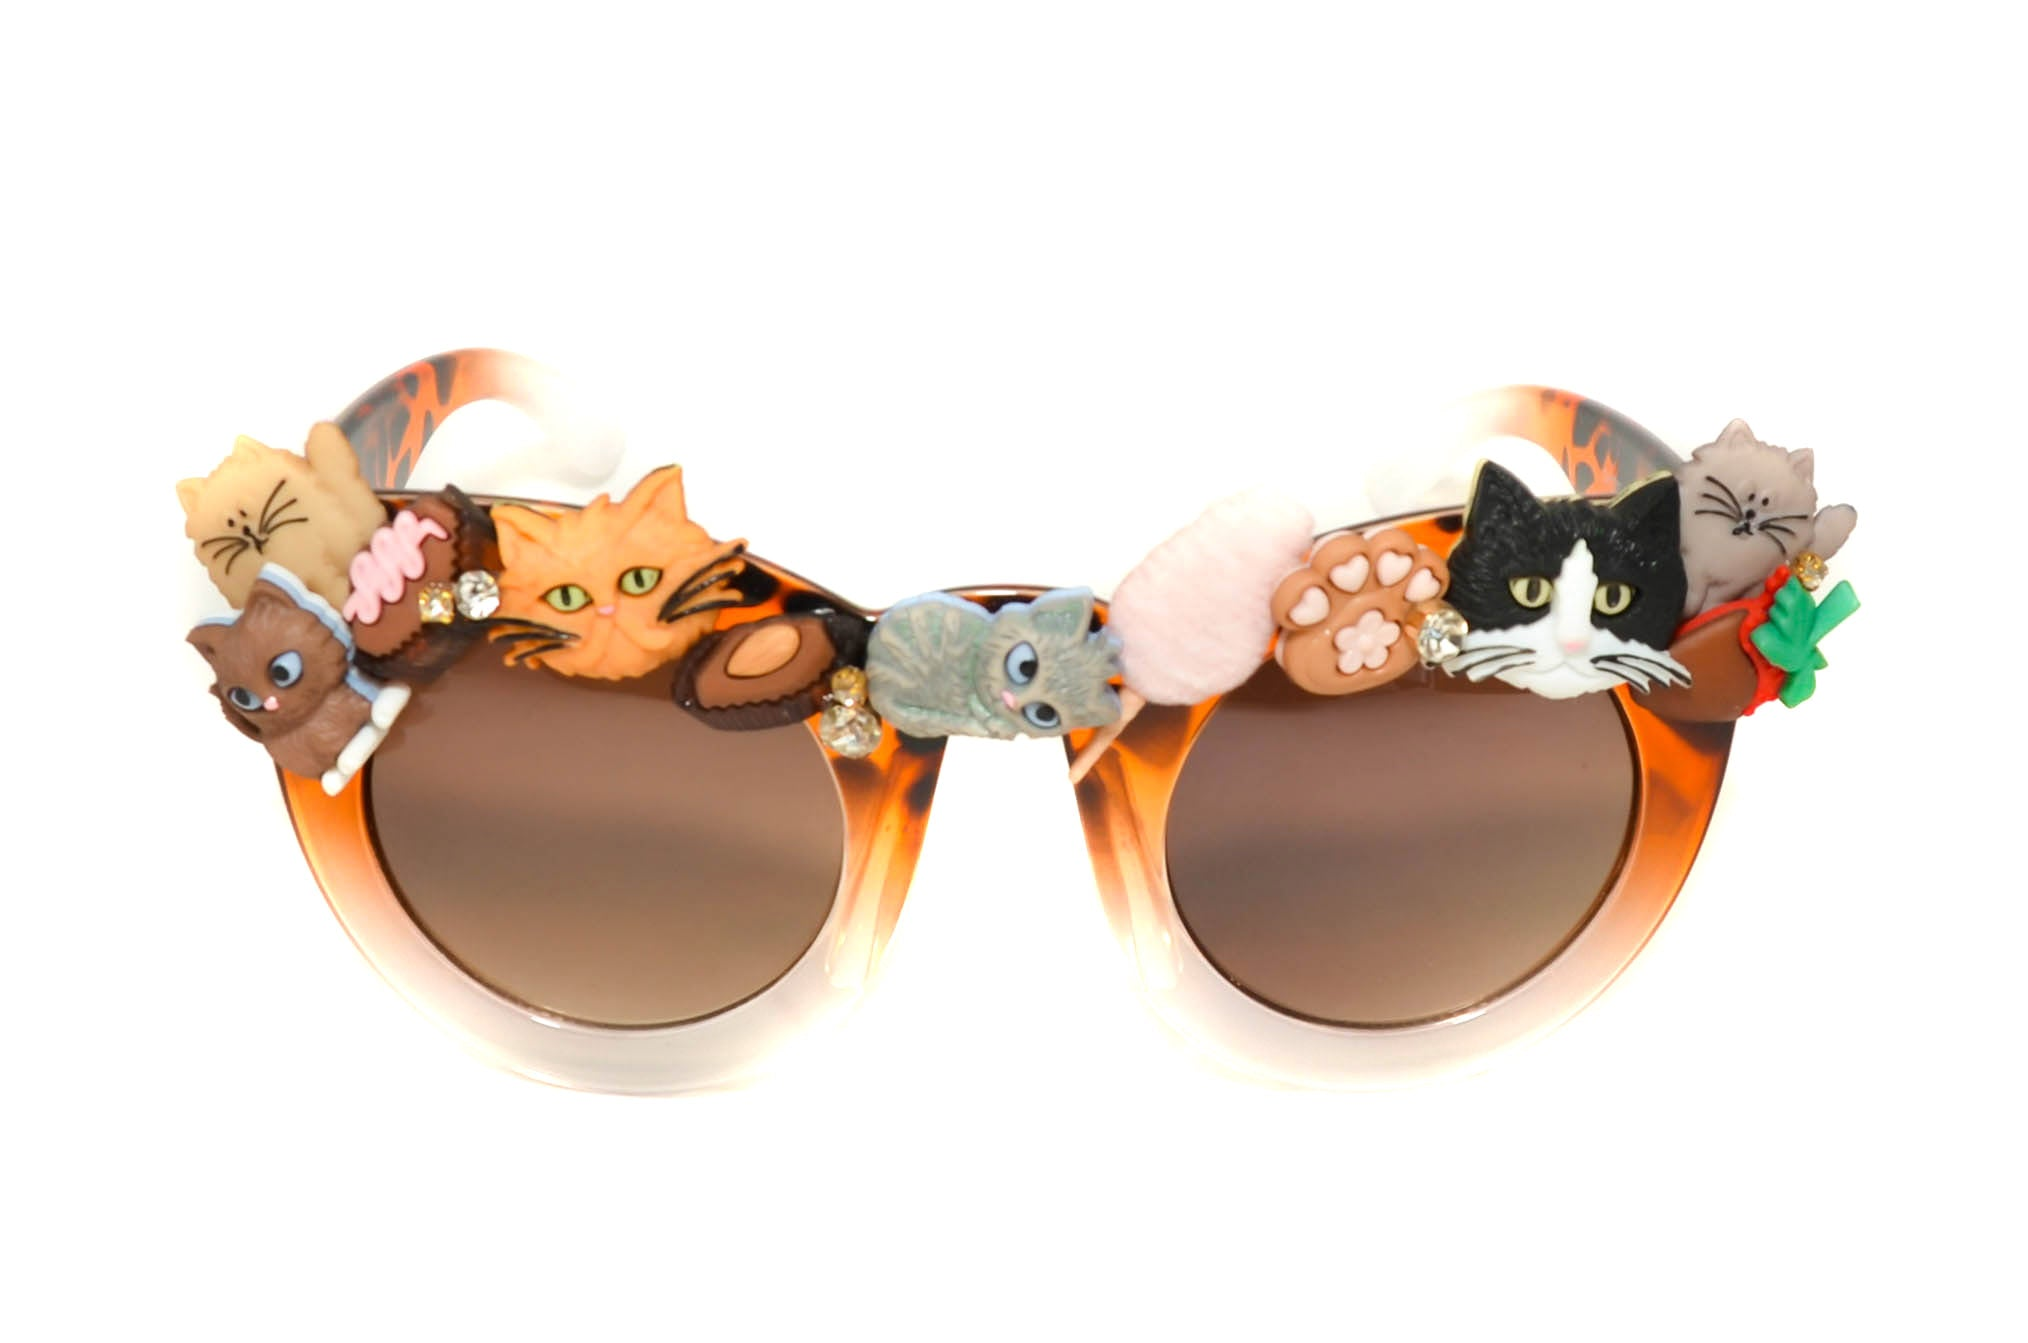 Cats & Candies Shades - Vintage Shop - Hunt and Gather San Diego - Festival Fashion